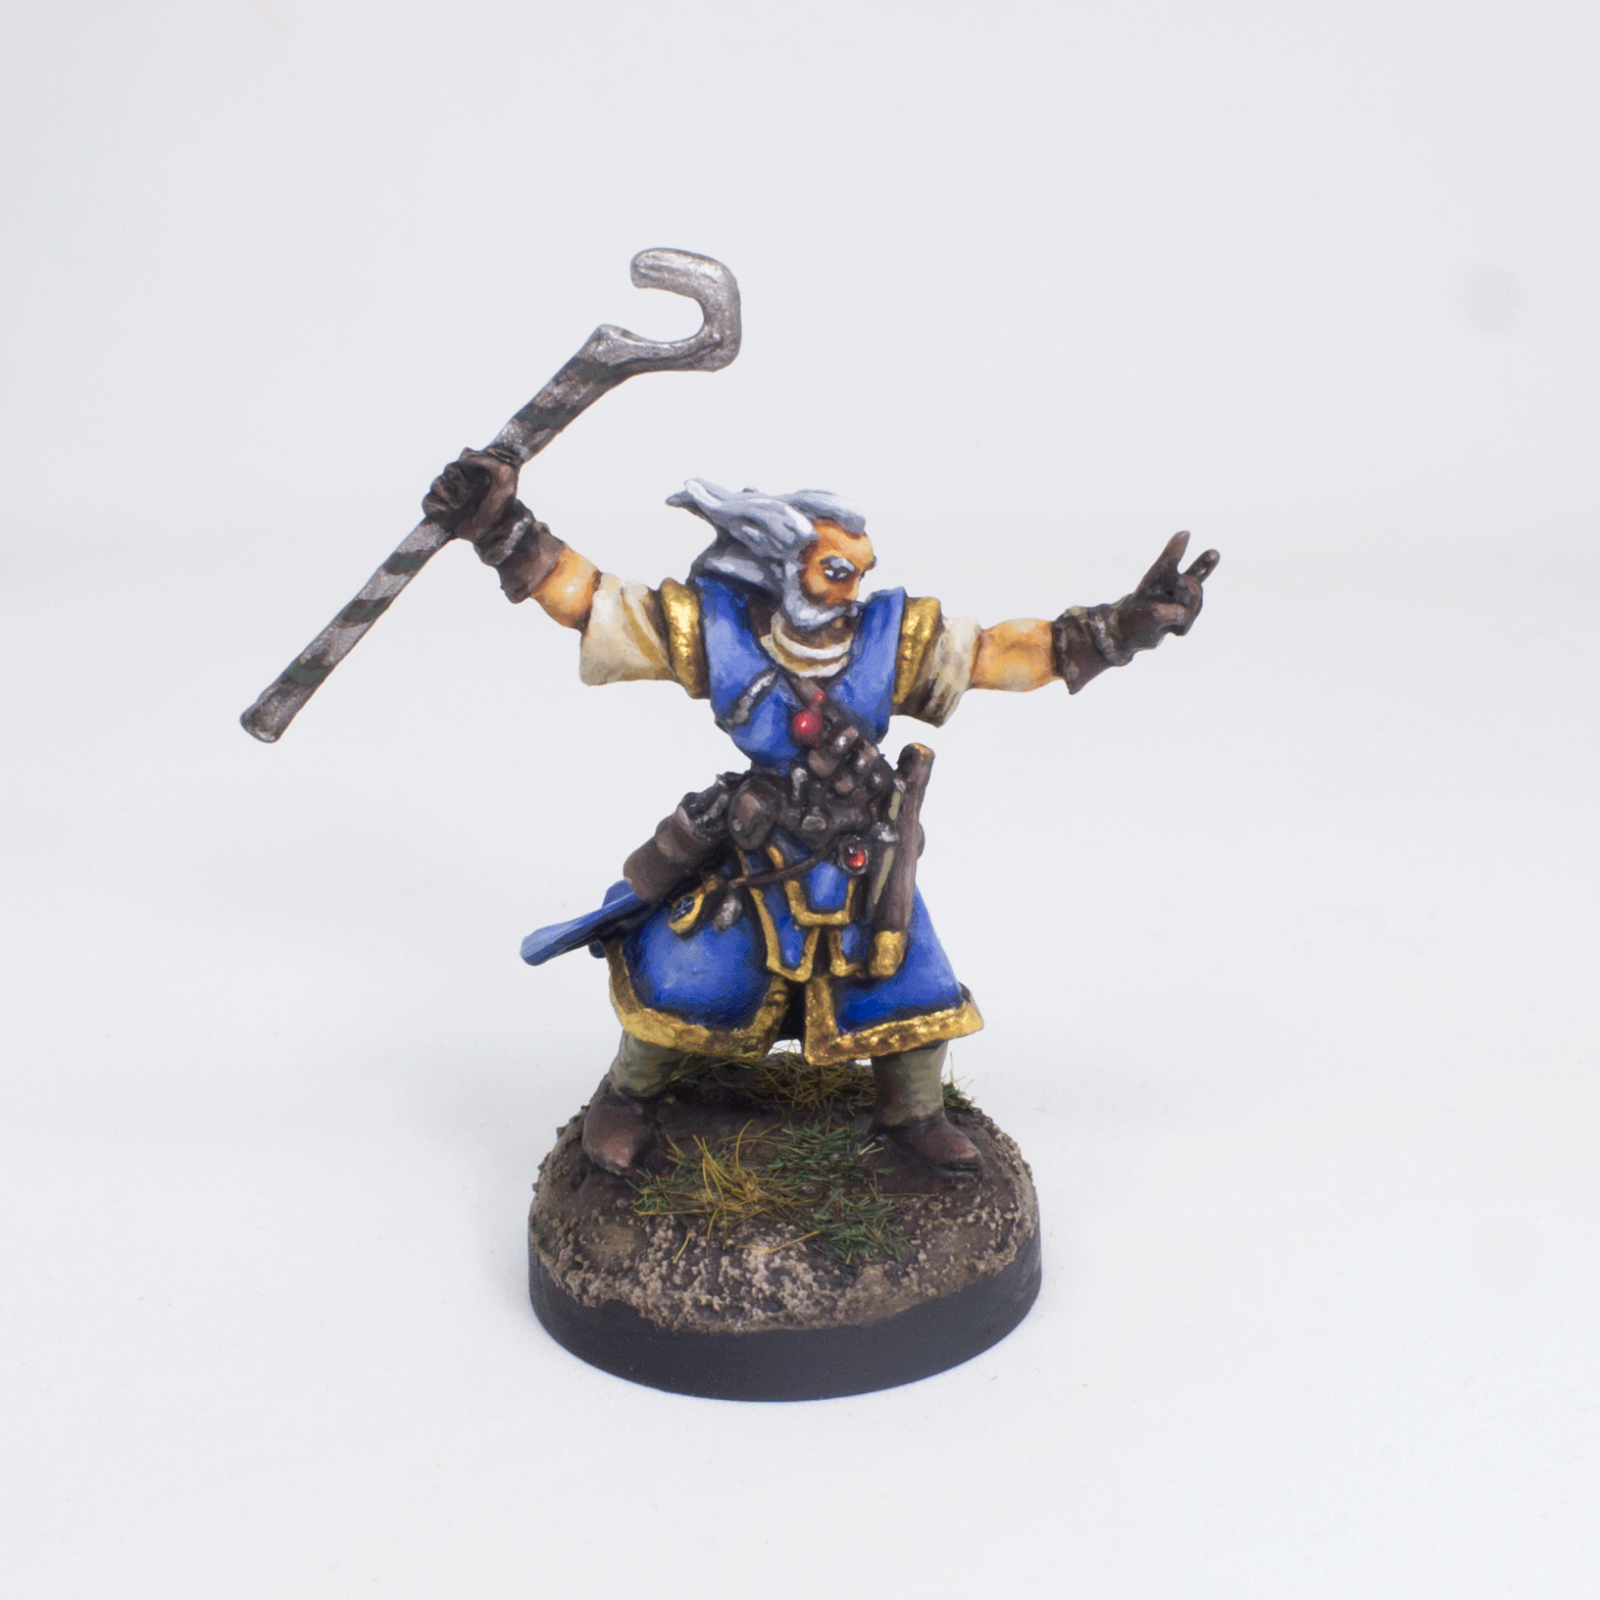 Painted Miniature Ezren Iconic Mage Fantasy Pathfinder rpg DND